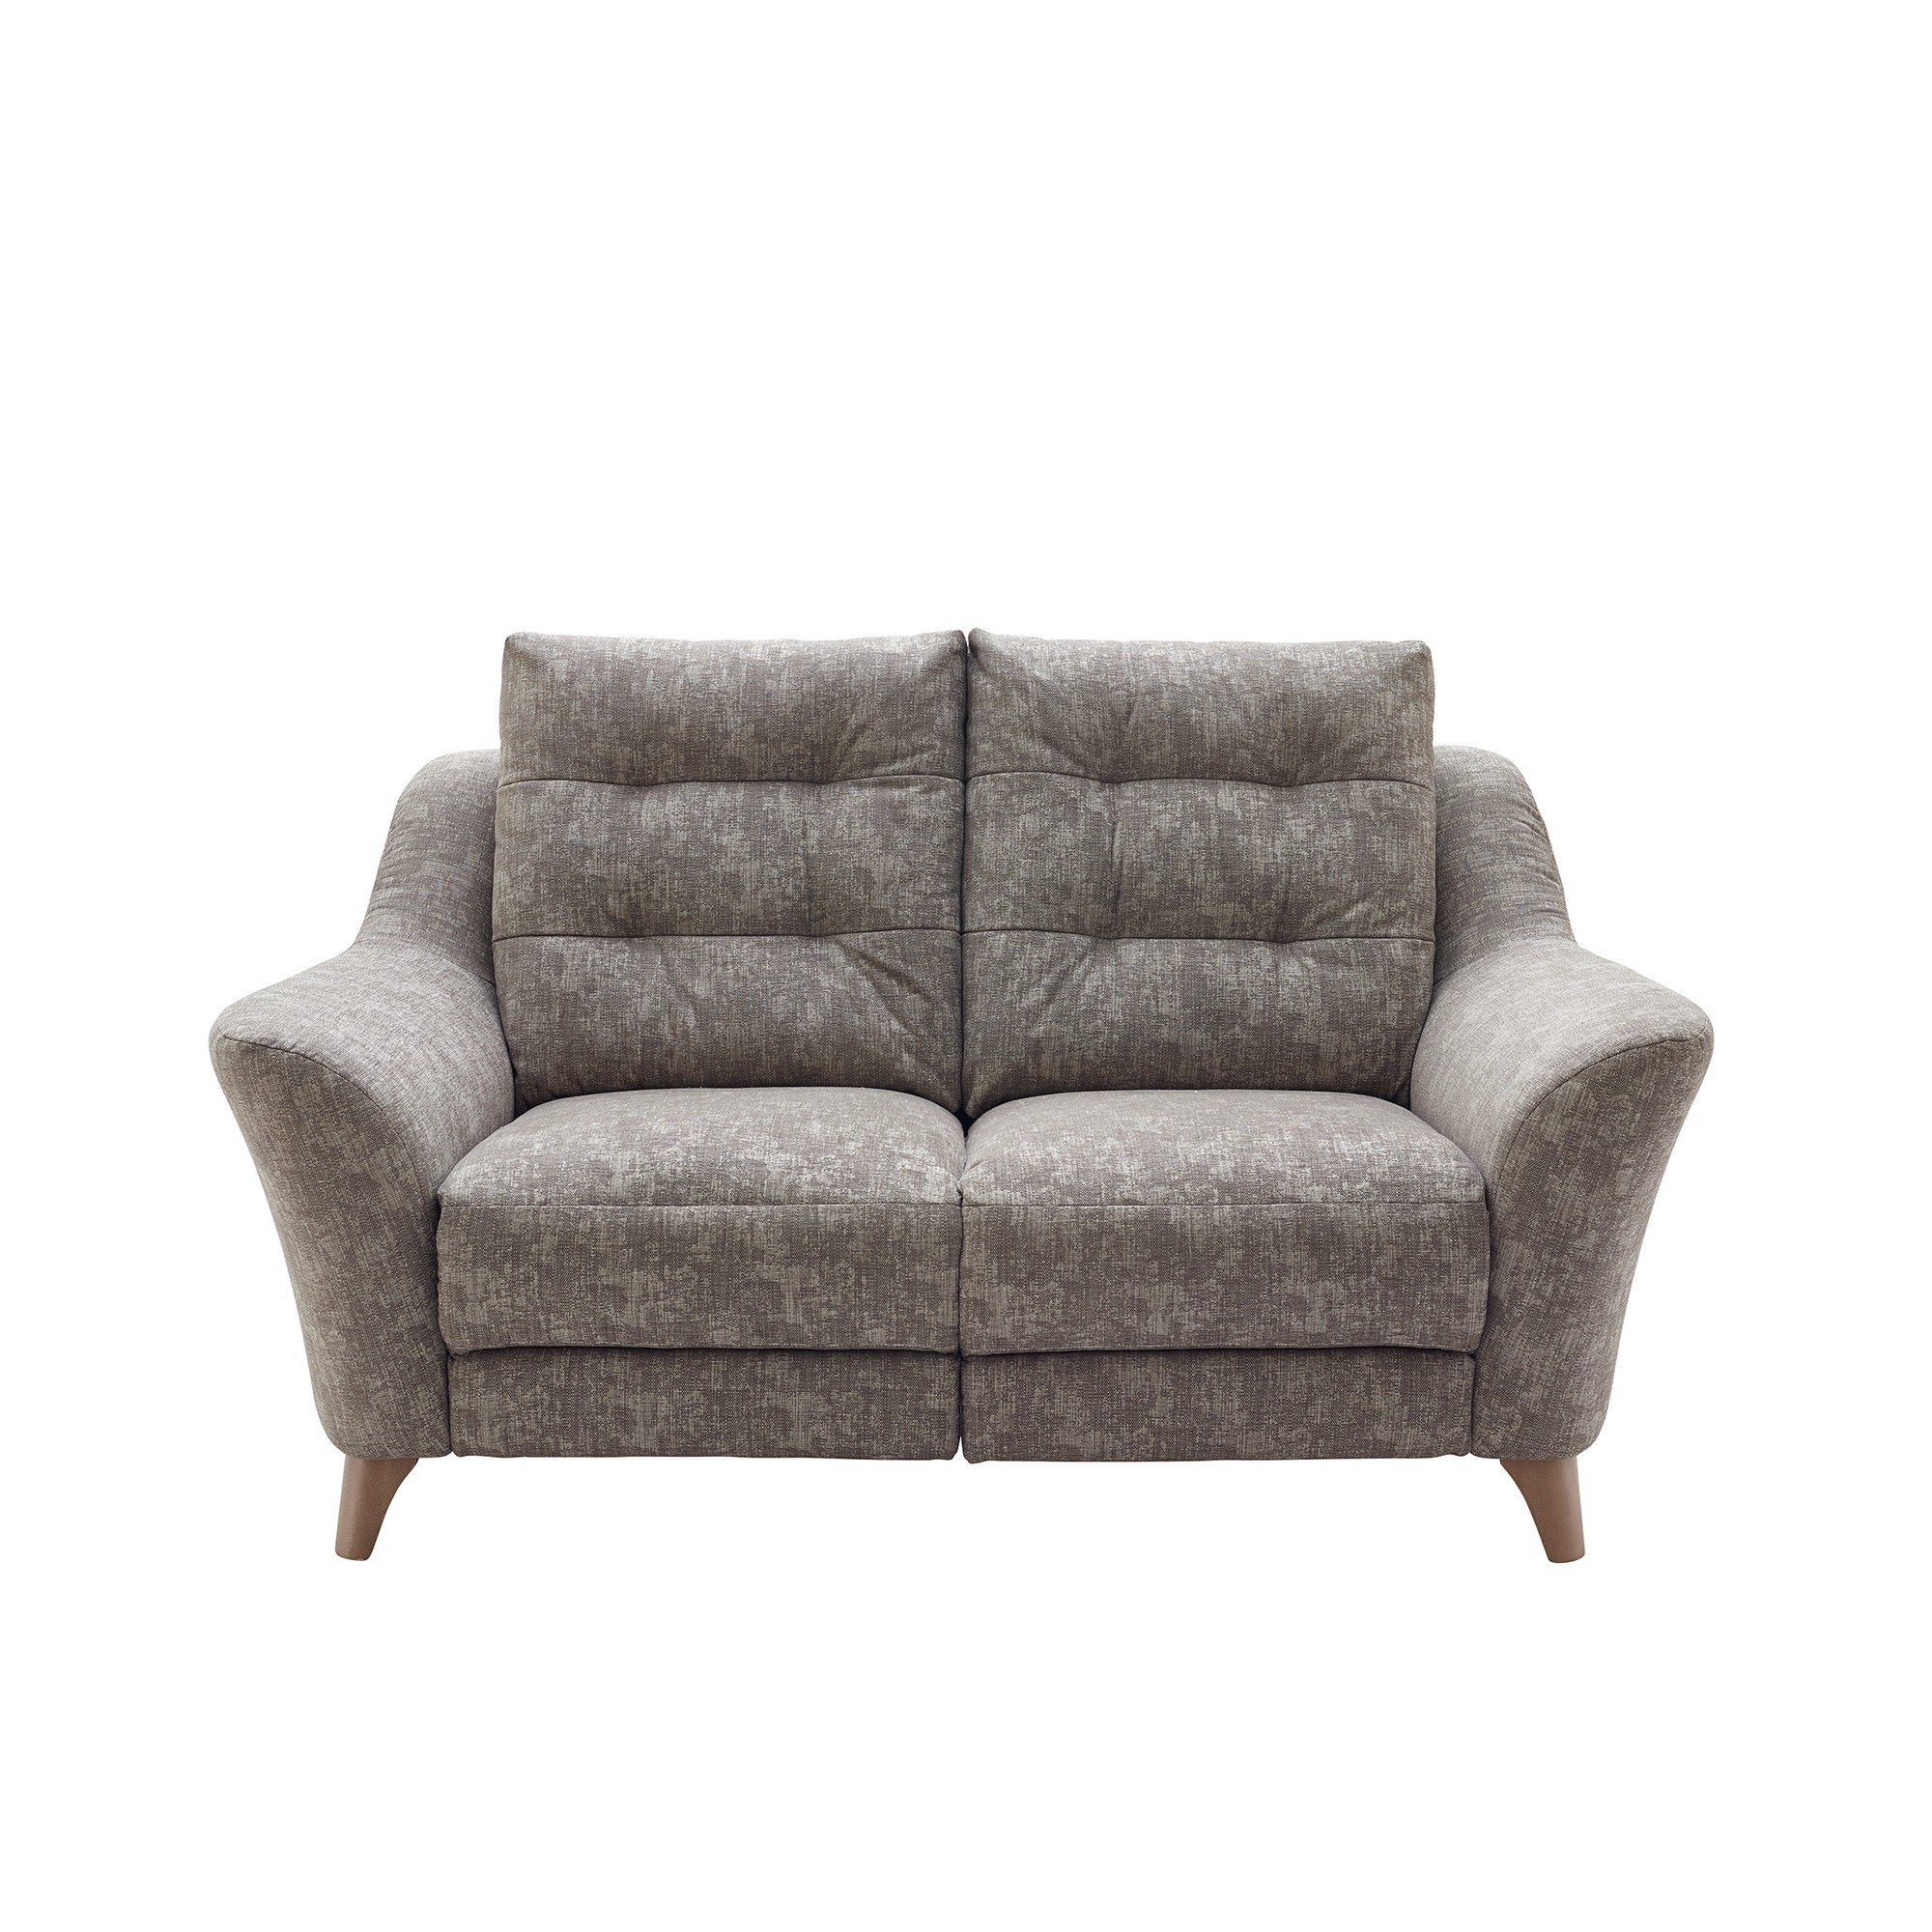 alexander james sofas hudson 4 seater sofa alexander and james alexander and james hudson sofa. Black Bedroom Furniture Sets. Home Design Ideas